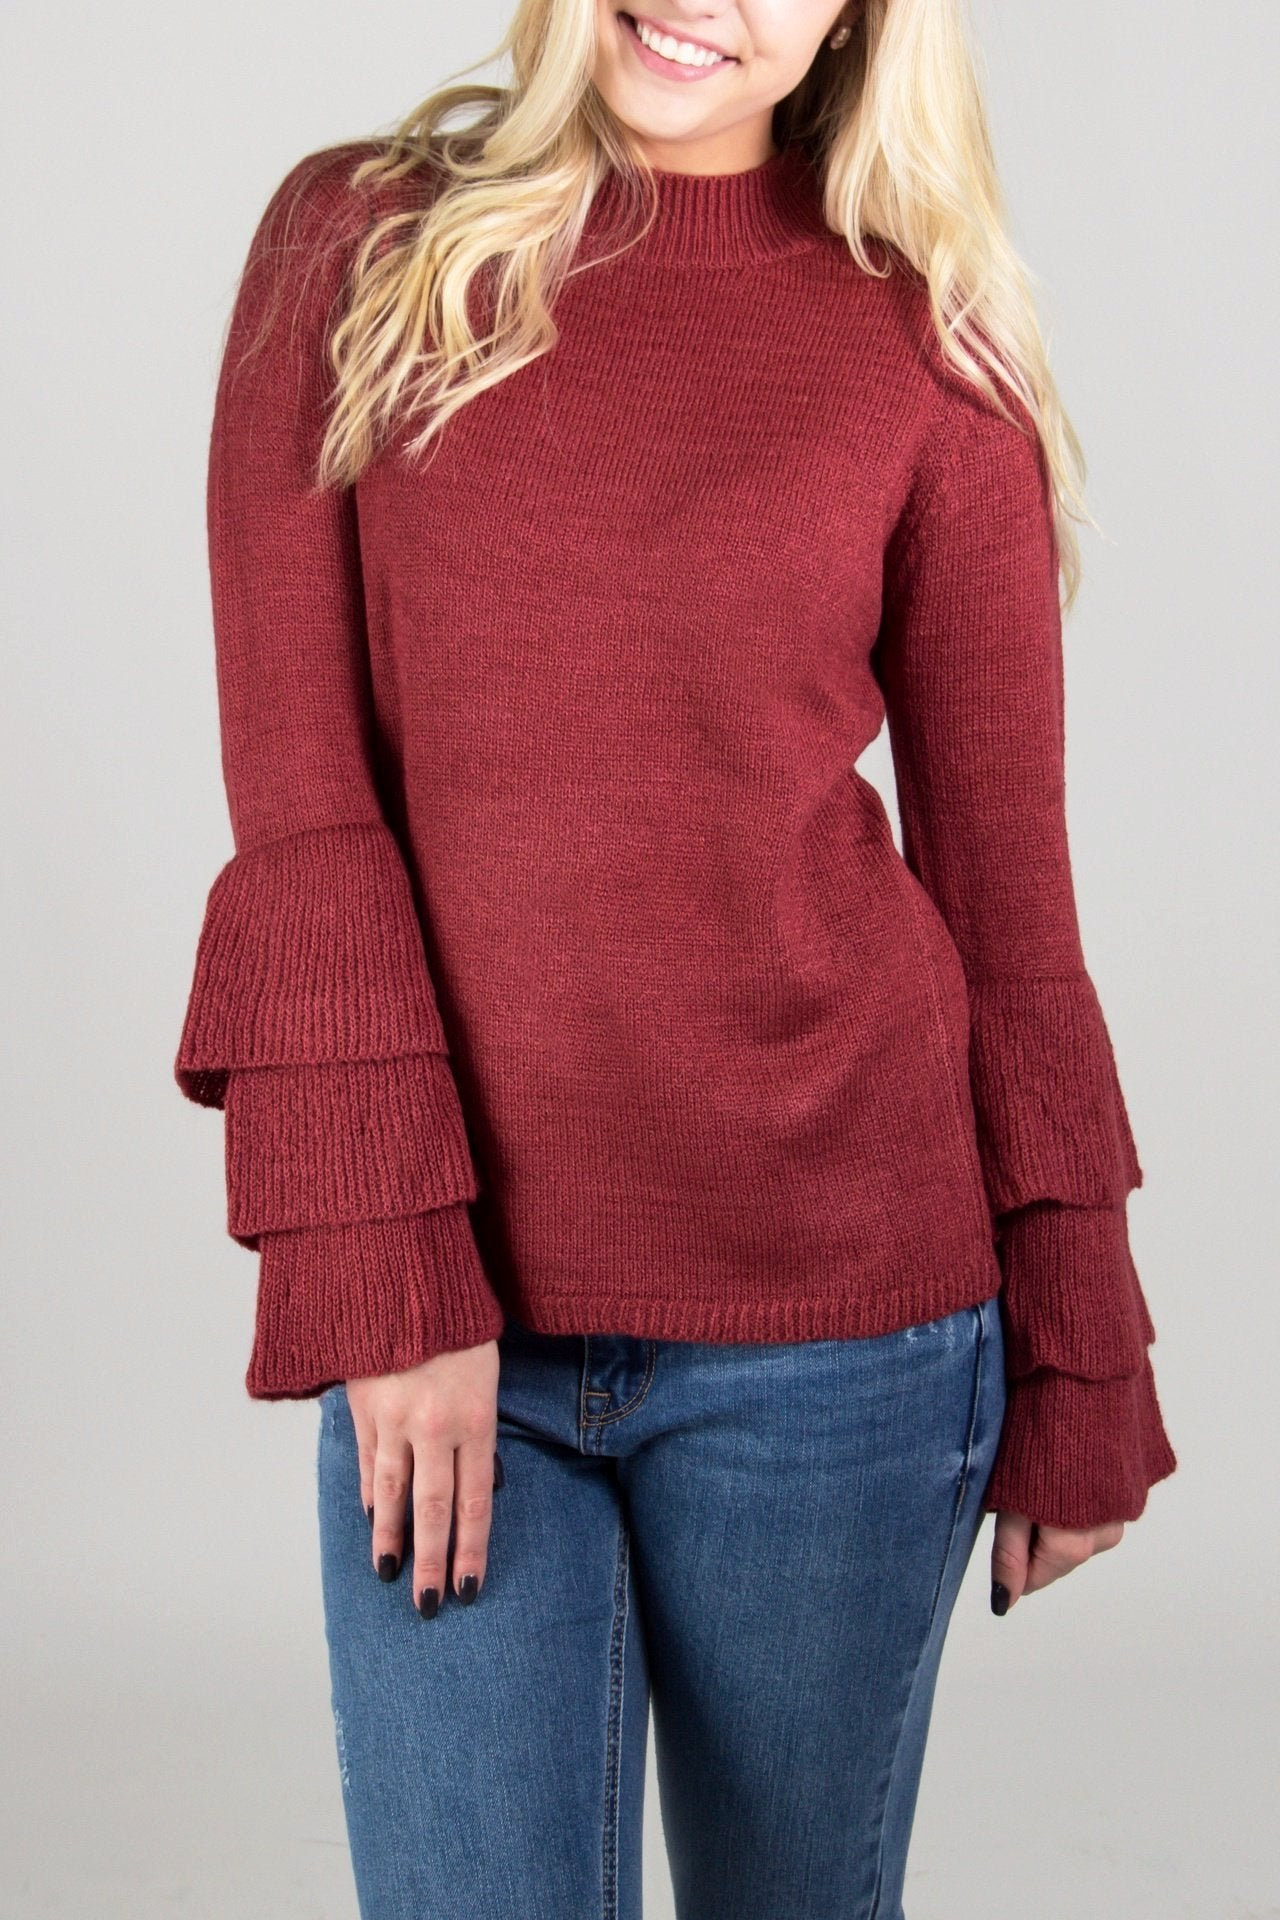 Alienor Sweater